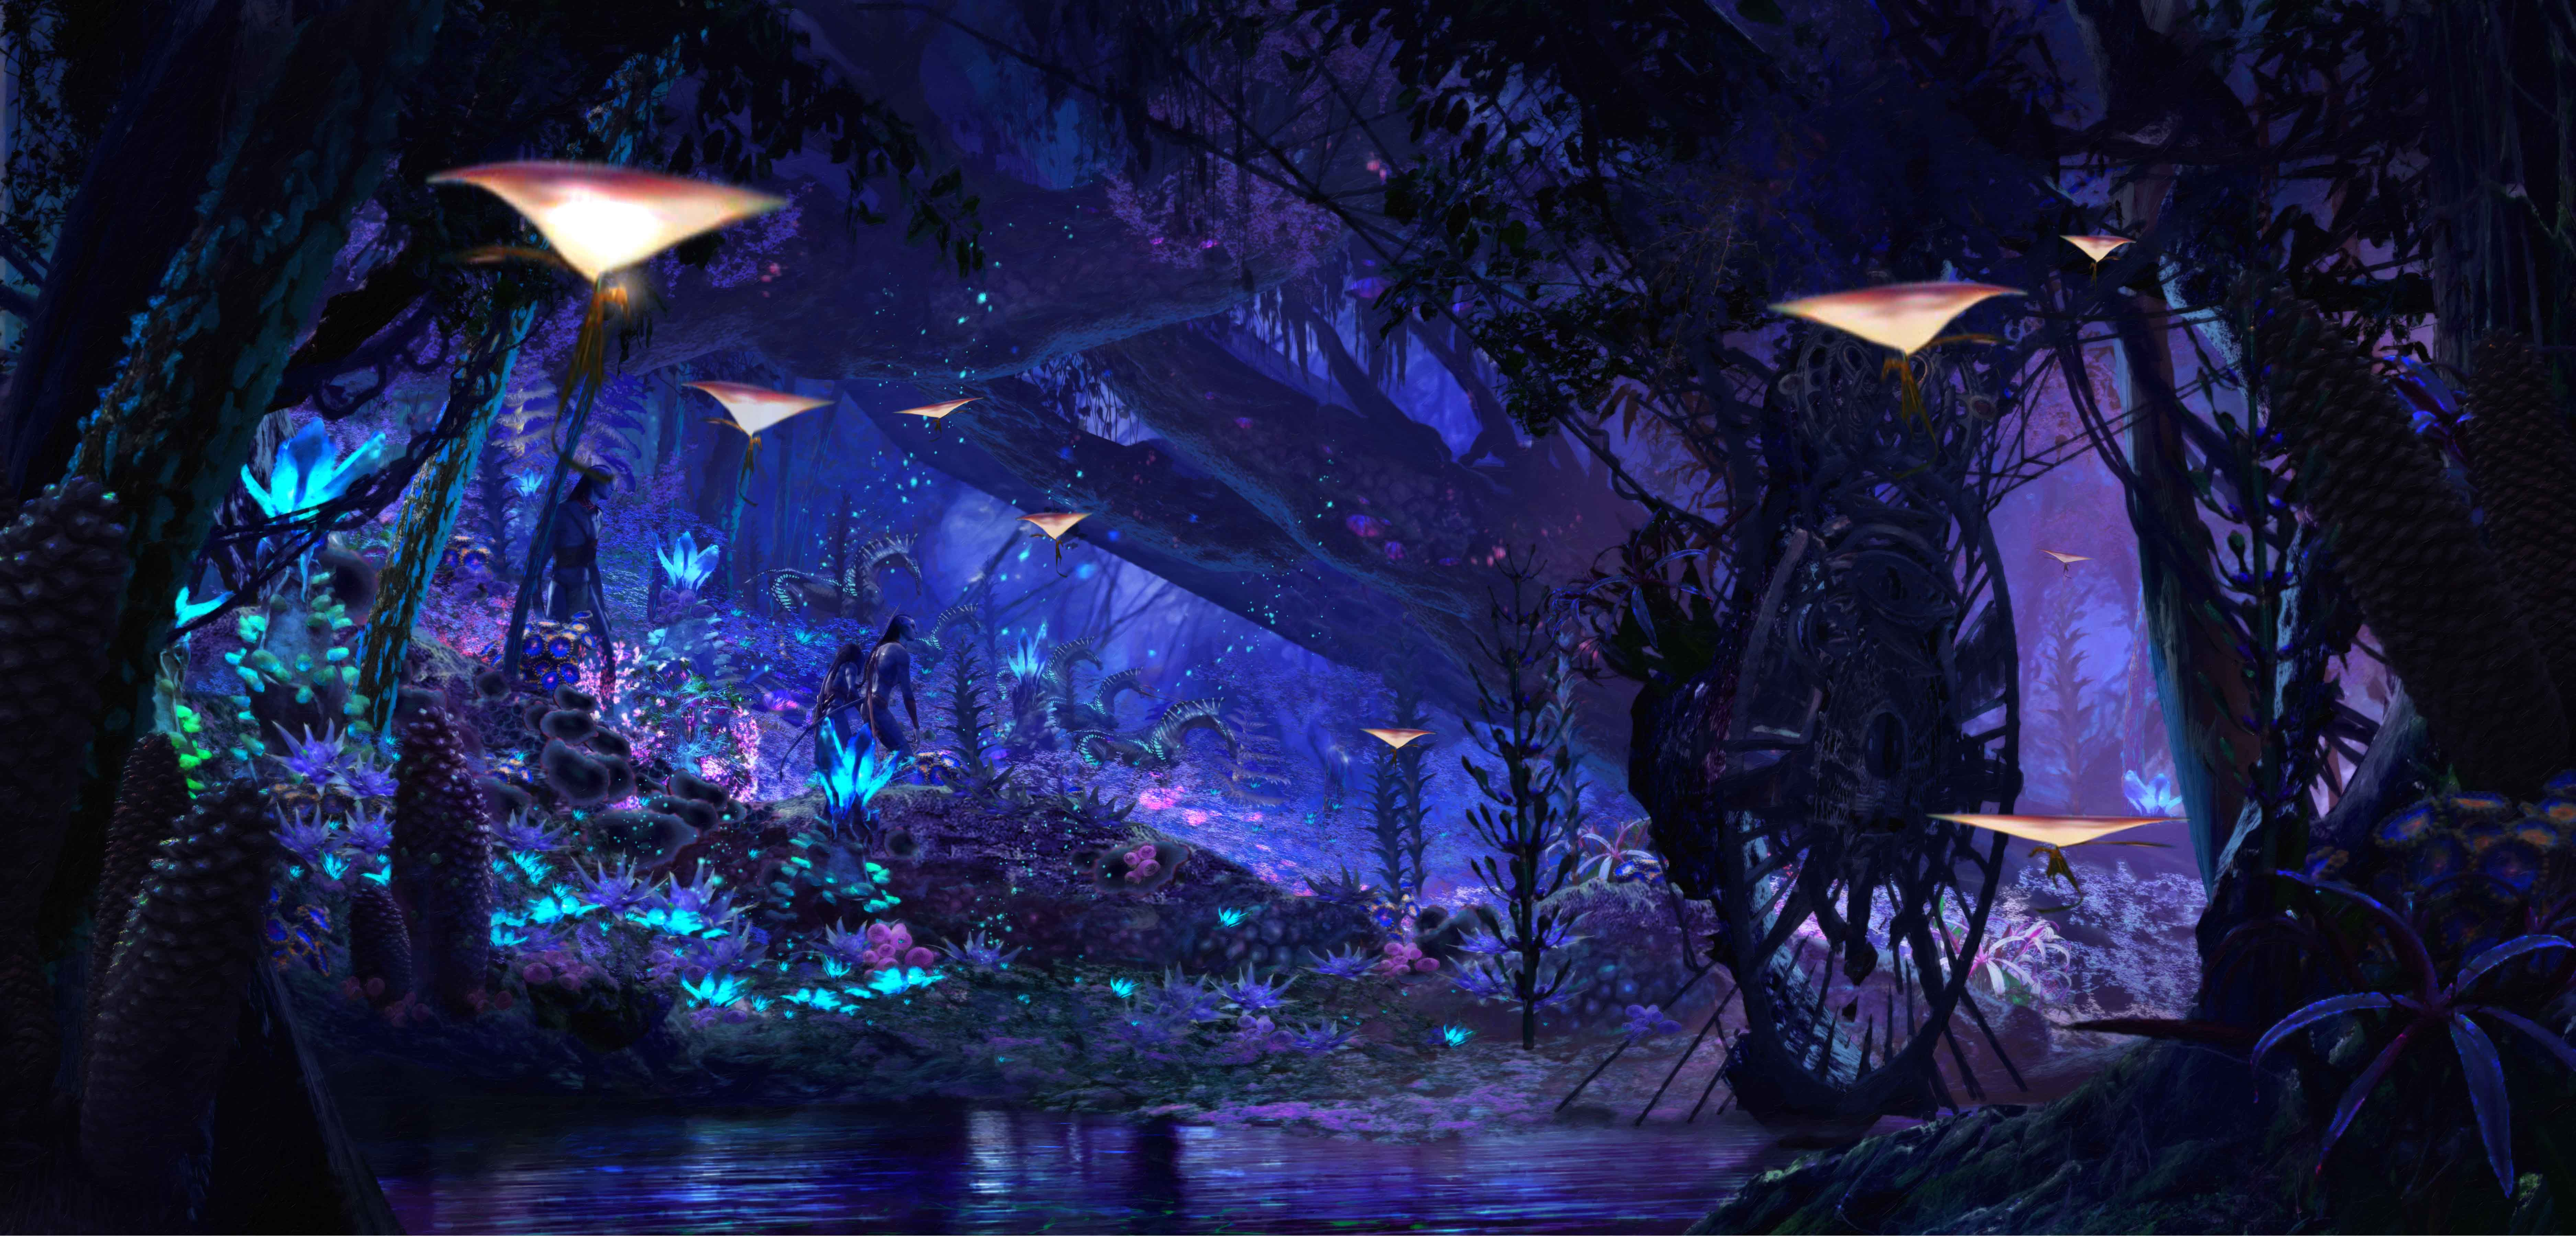 new details about pandora the world of avatar